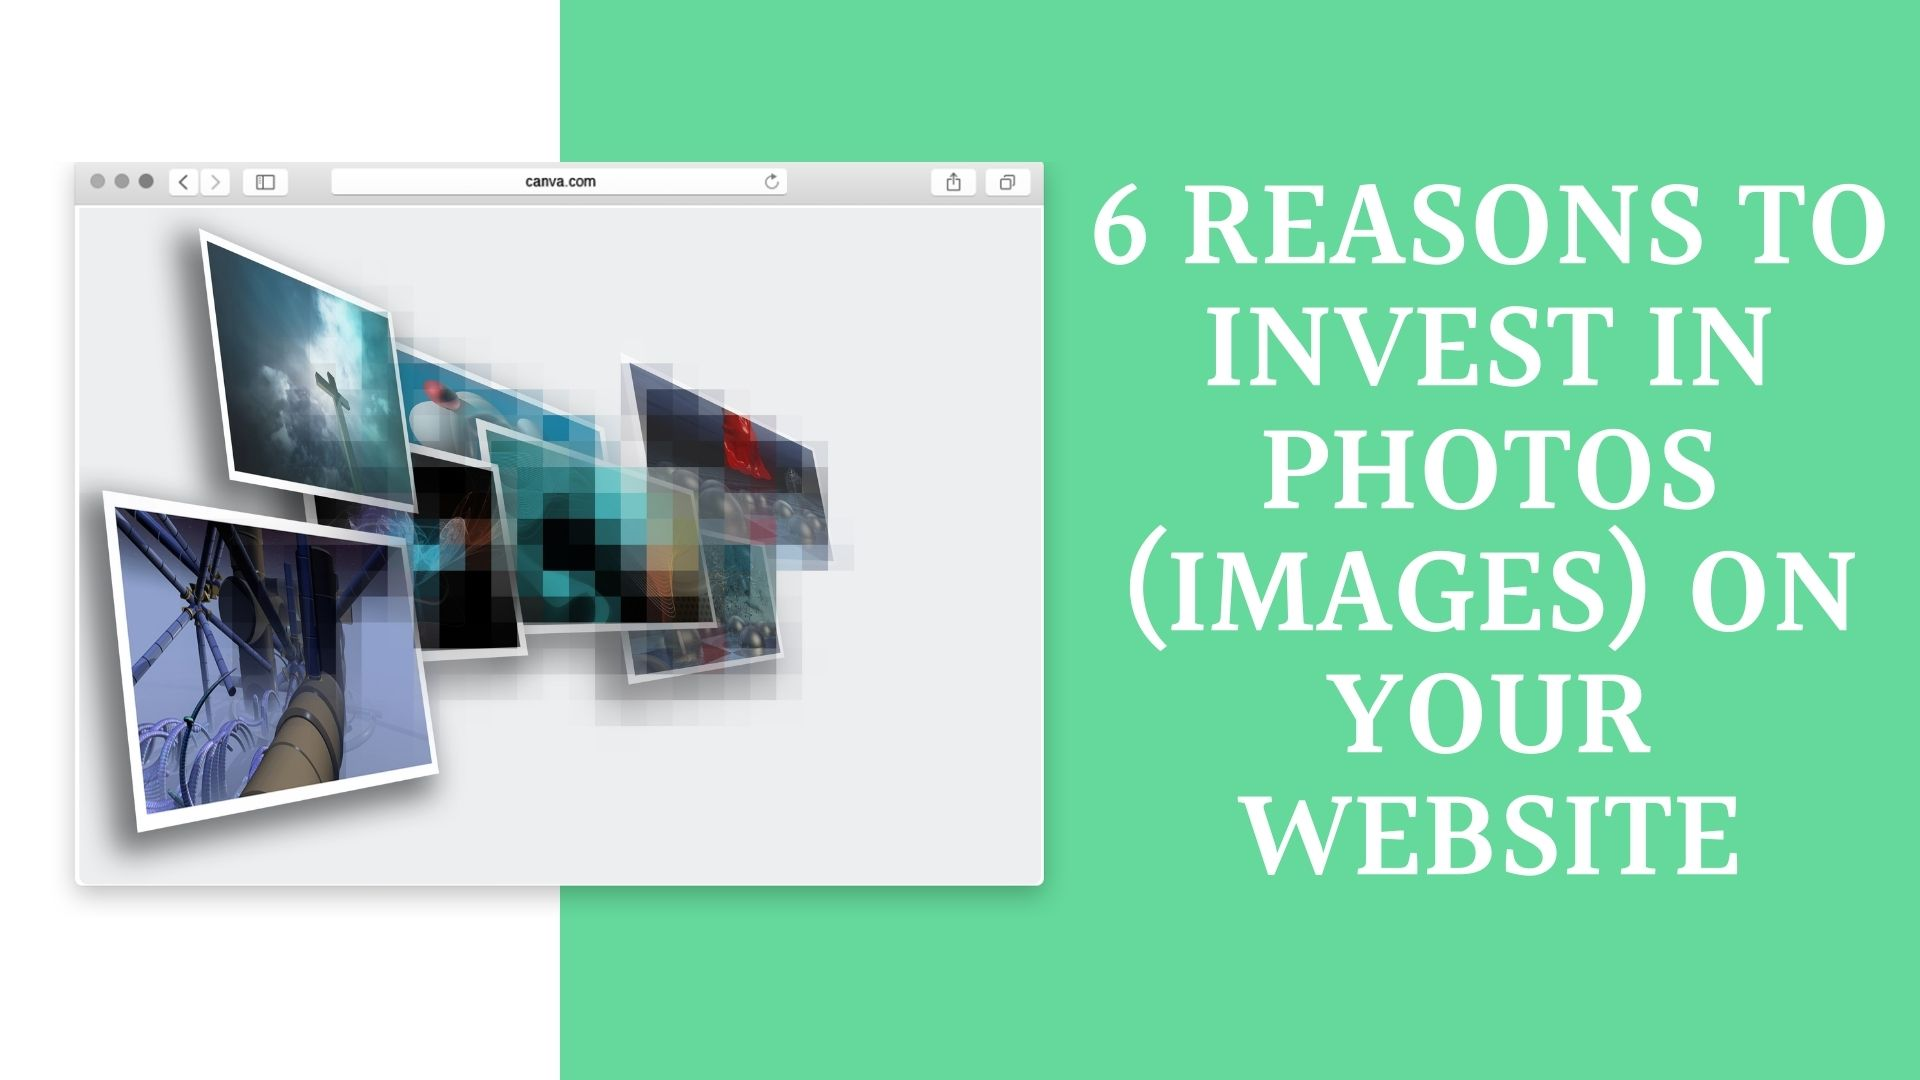 6 REASONS TO INVEST IN PHOTOS (IMAGES) ON YOUR WEBSITE